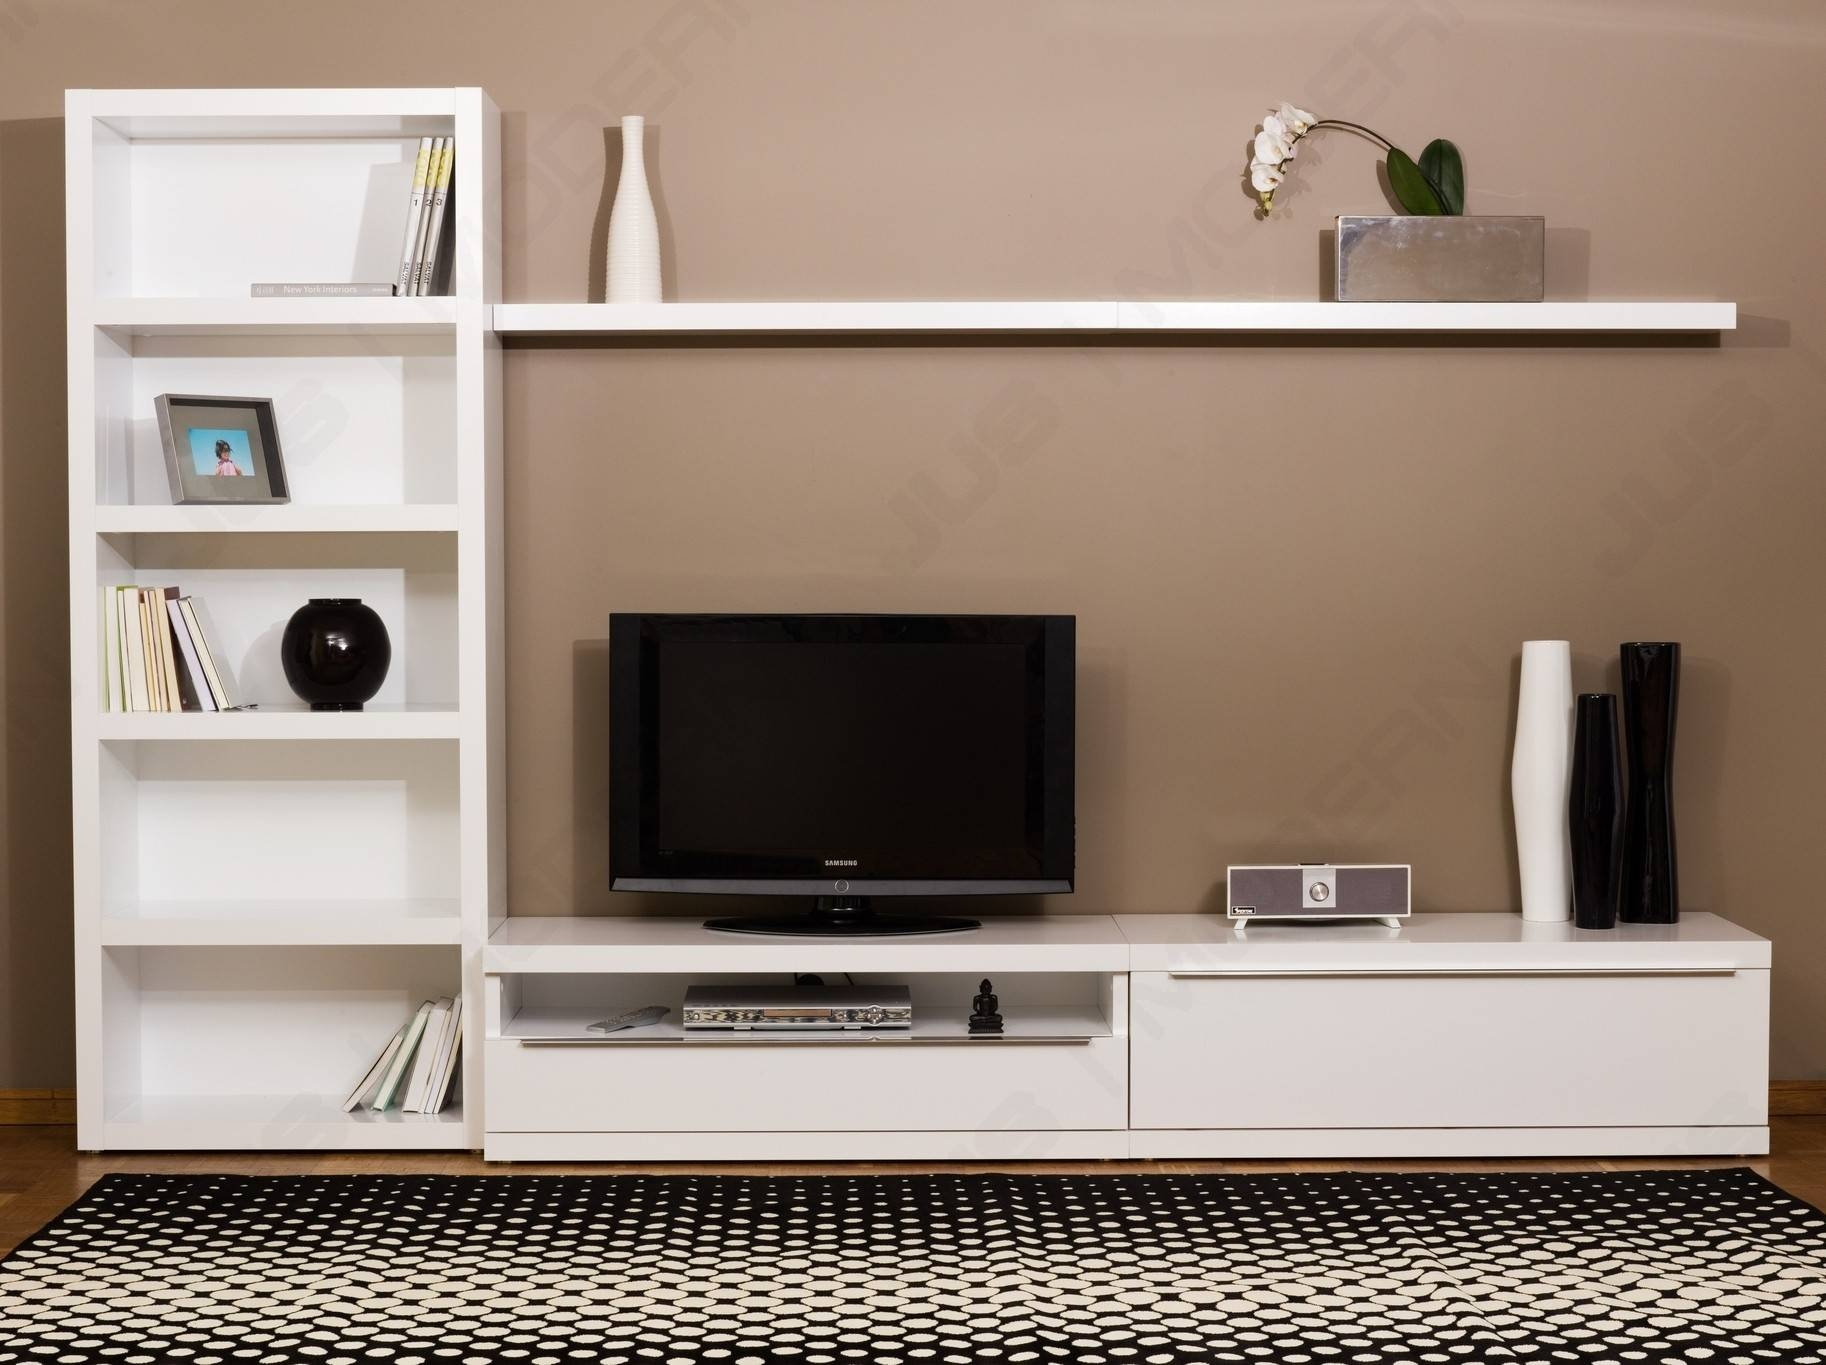 Wall Mounted Tv Stands Minimalist Stand An Trends Including for Wall Display Units And Tv Cabinets (Image 8 of 15)